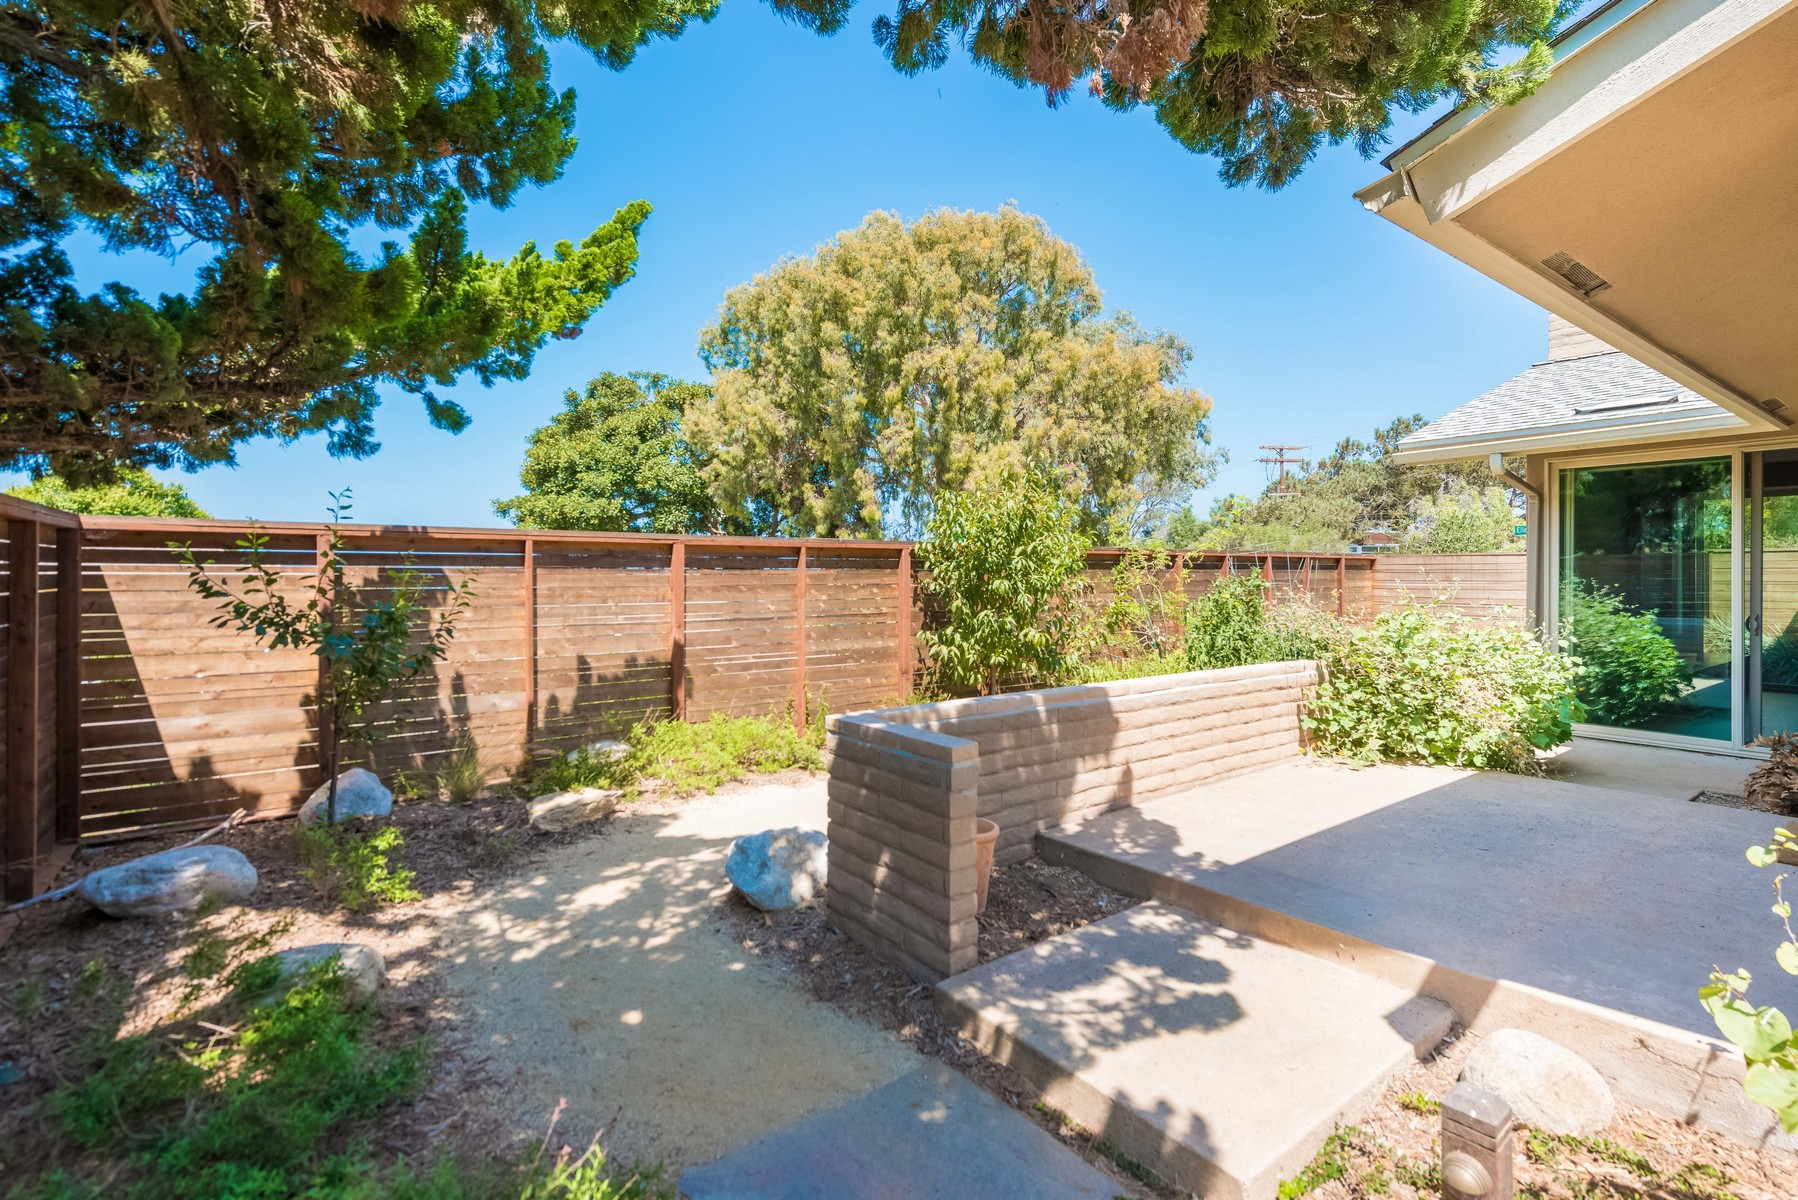 Additional photo for property listing at 2505 Ellentown Road  La Jolla, California 92037 Estados Unidos